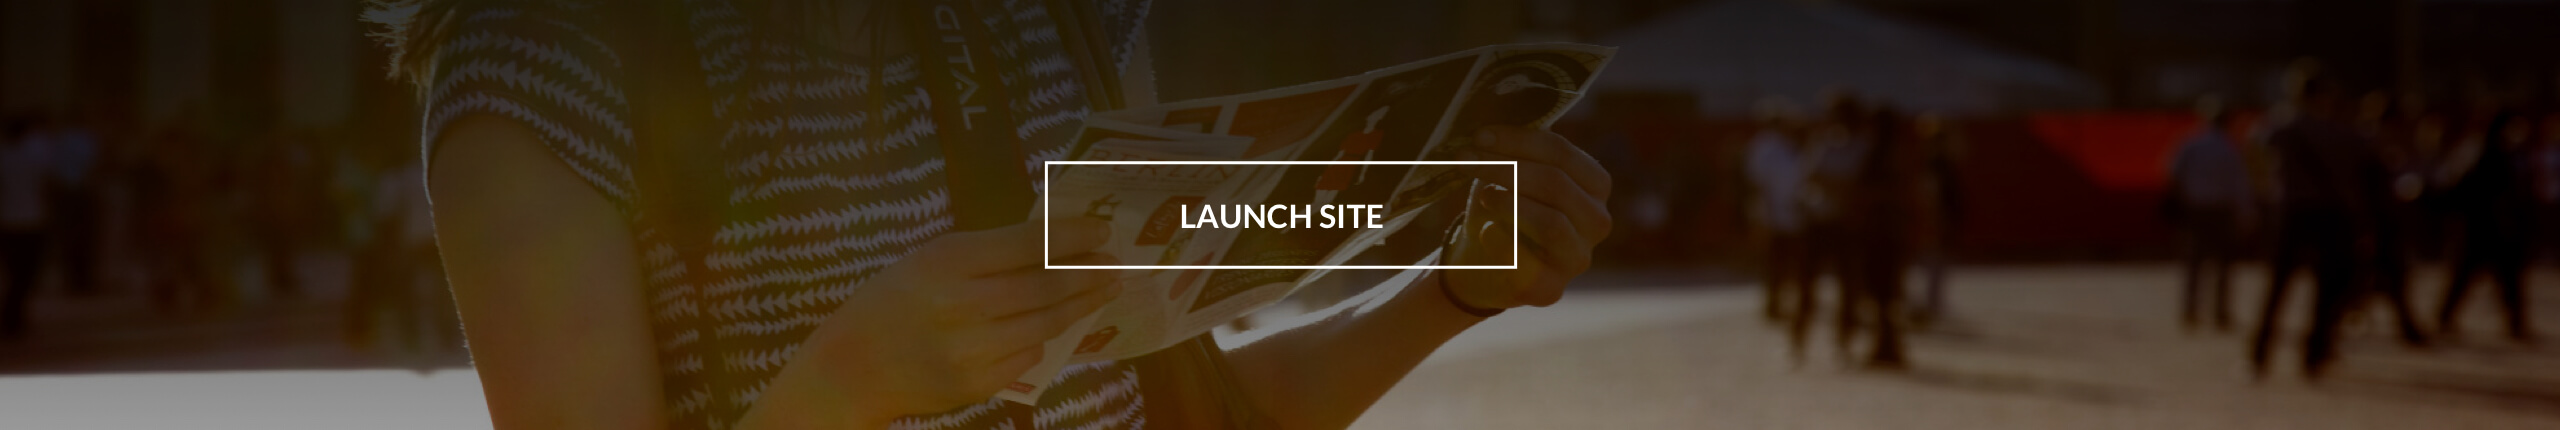 housestay_launchsite